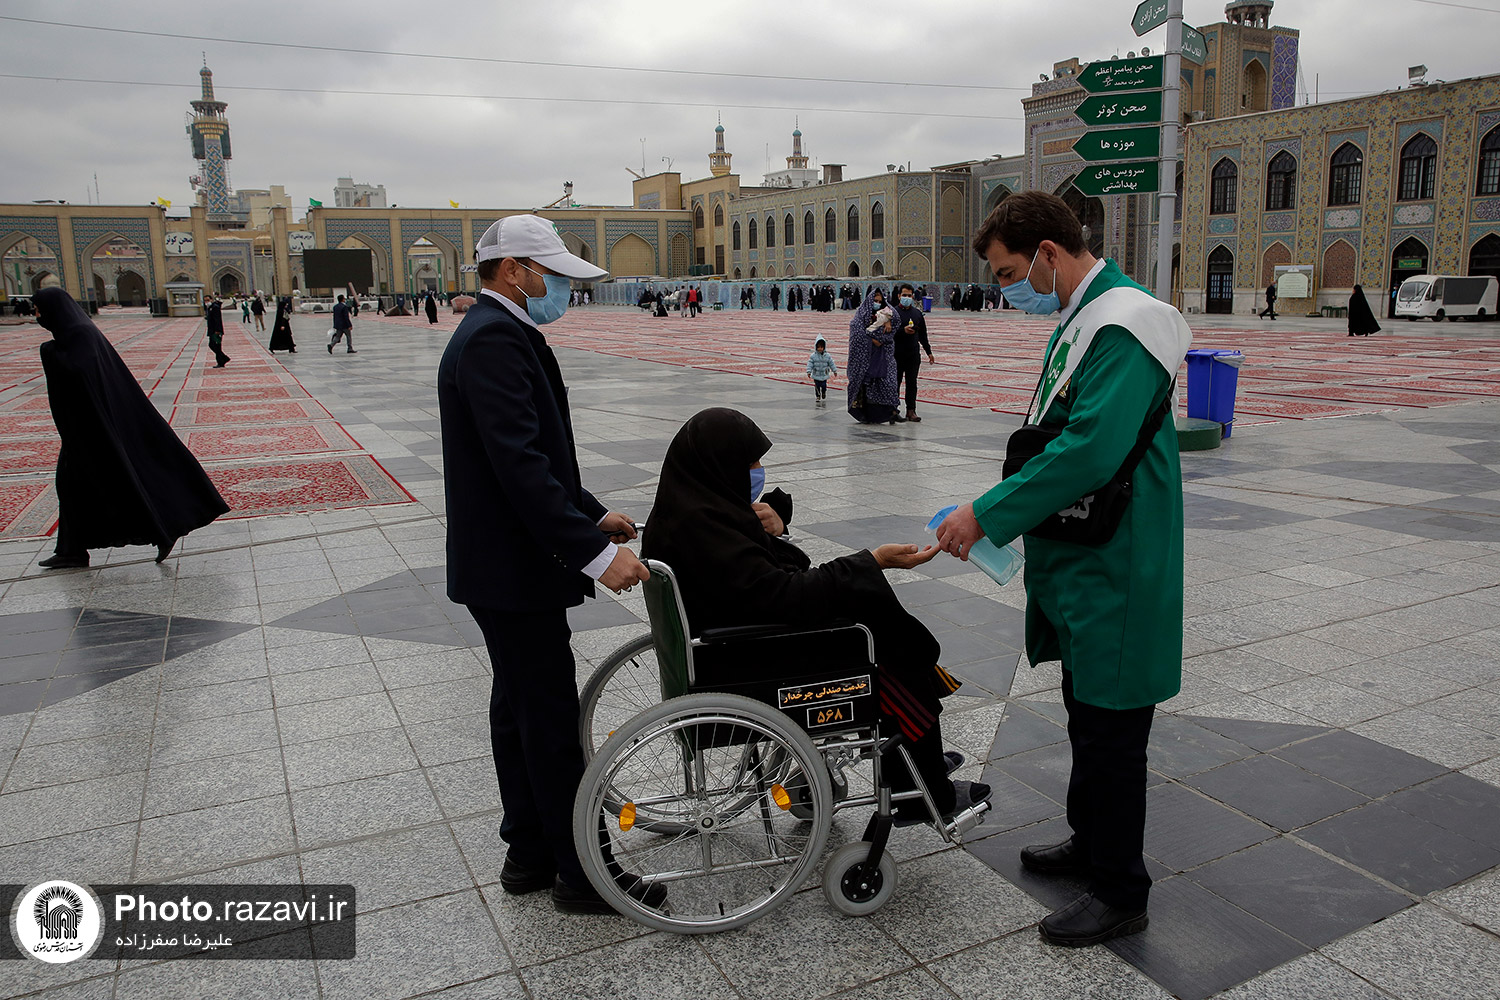 Atmosphere of Imam Reza (AS) holy shrine on the verge of the New Year